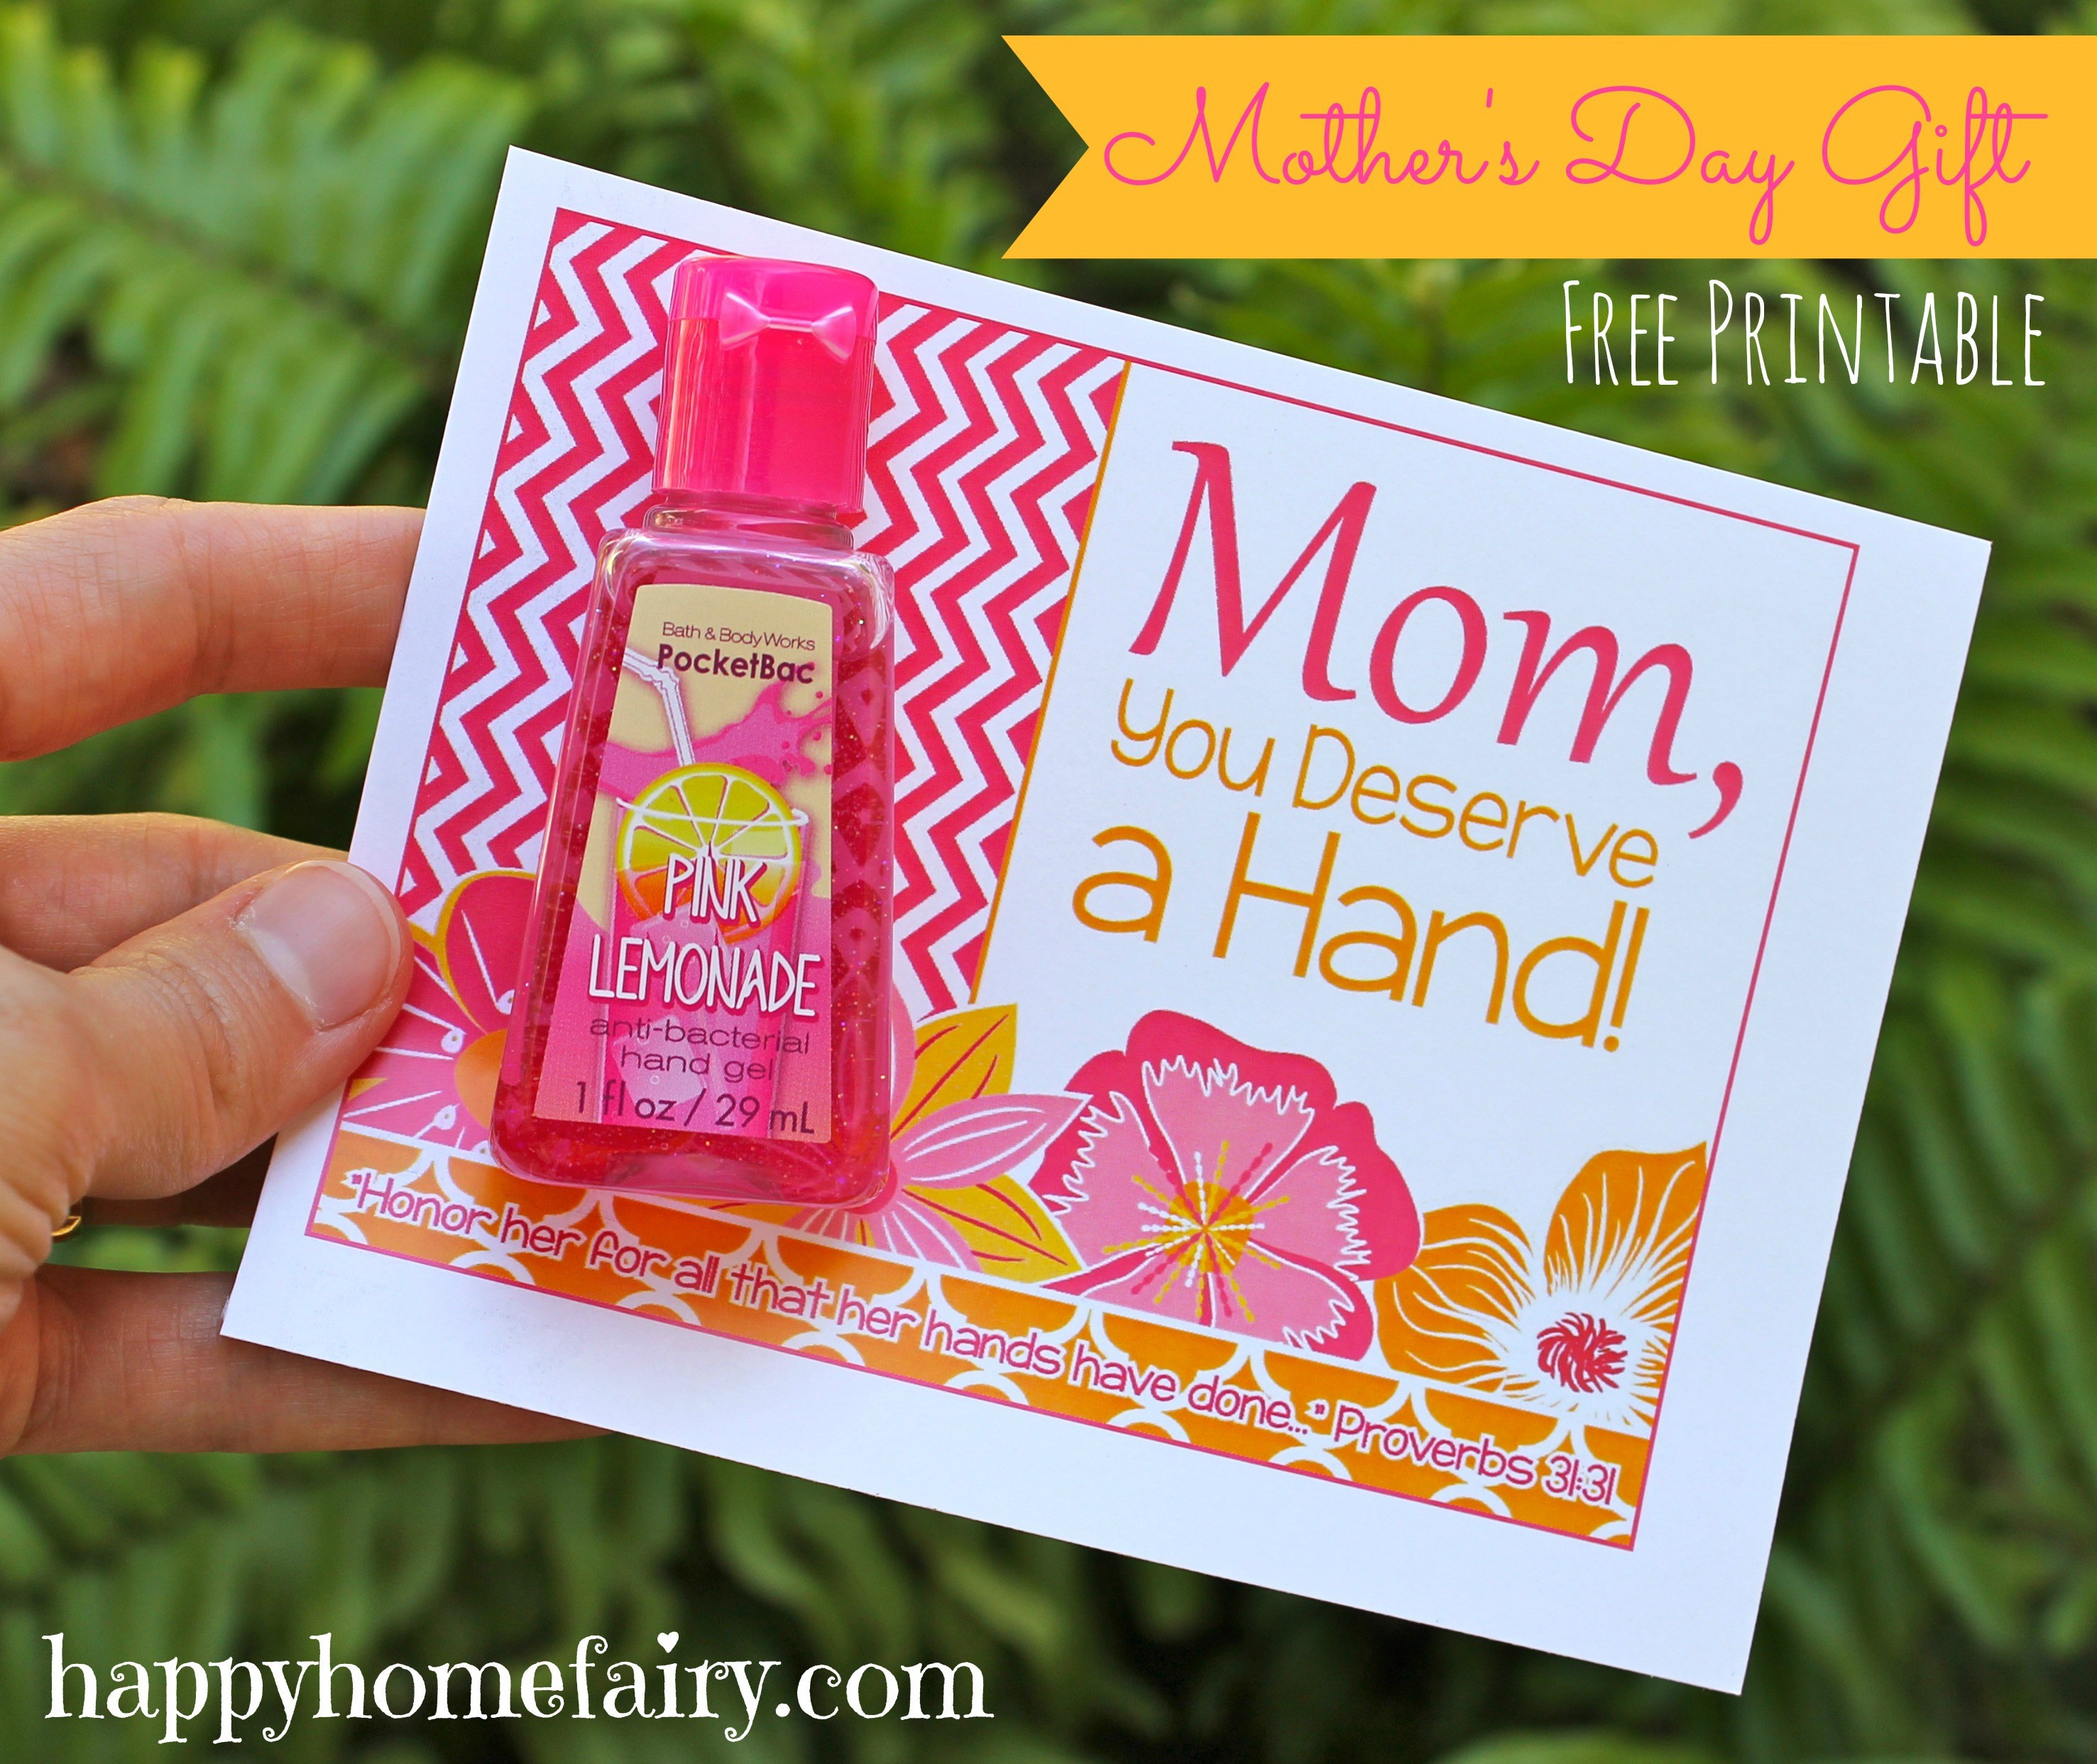 Cute Mothers Day Gift Ideas  Easy Mother s Day Gift Idea FREE Printable Happy Home